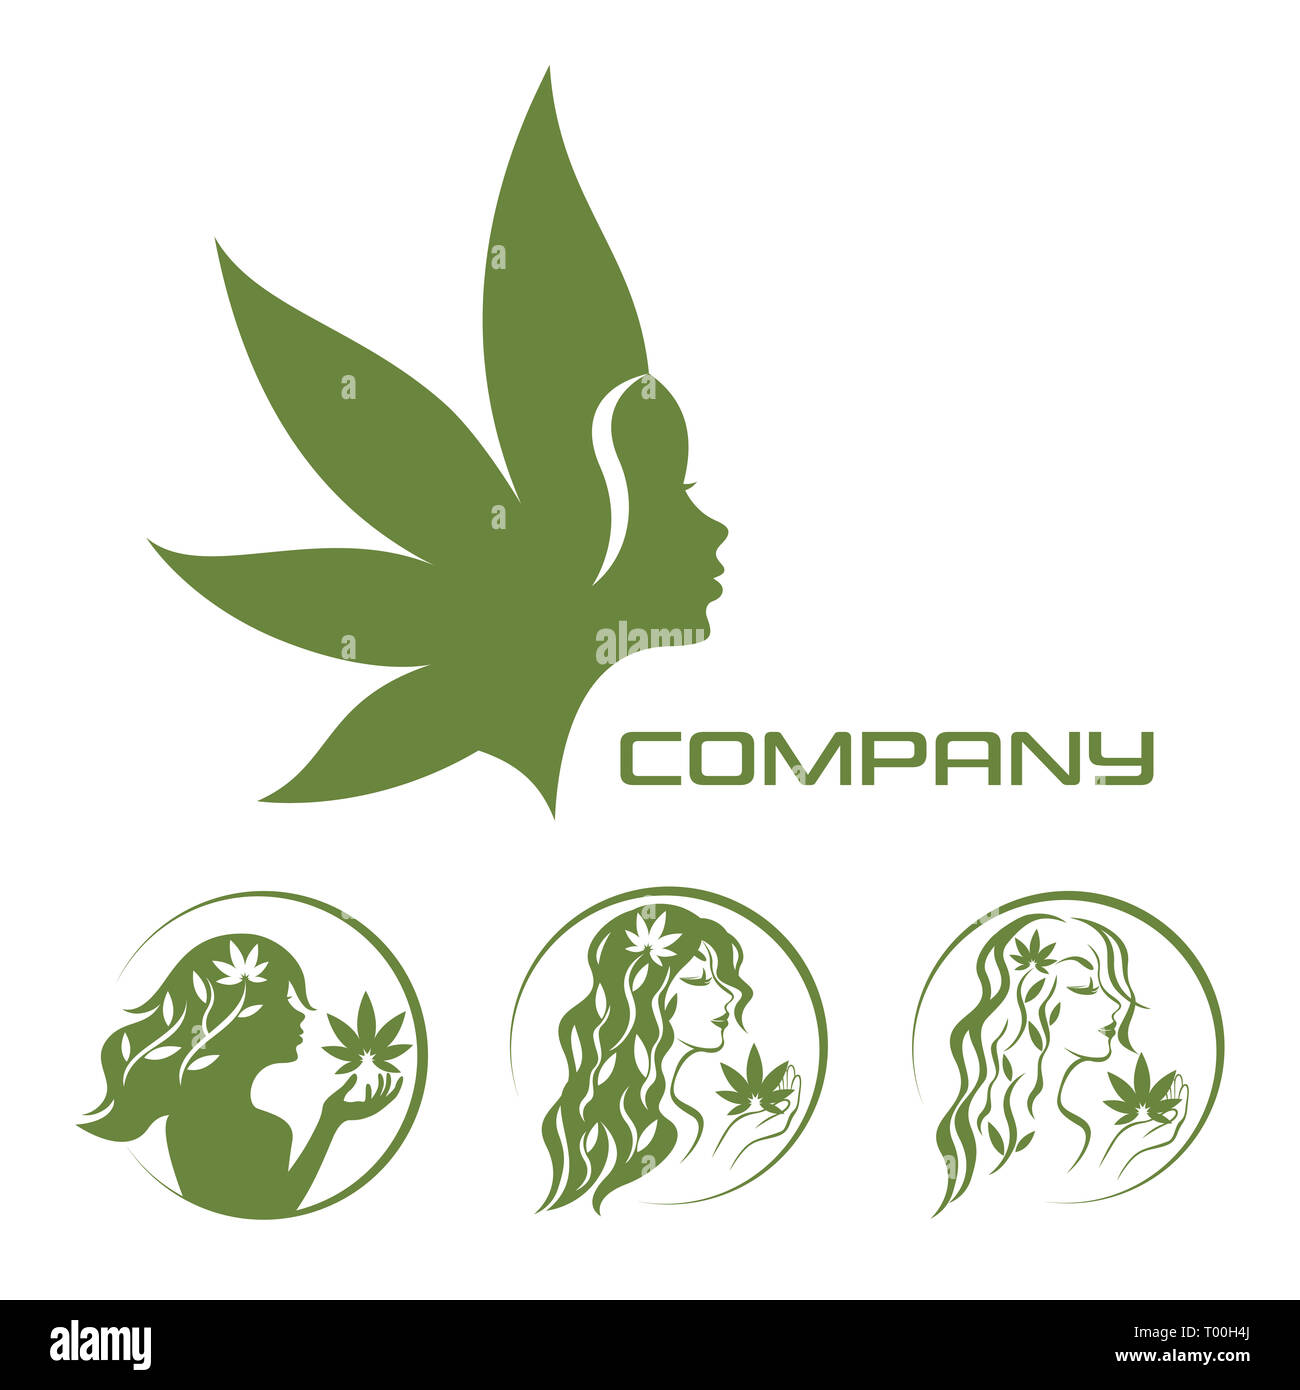 Goddess of the earth and cannabis logo - Stock Image